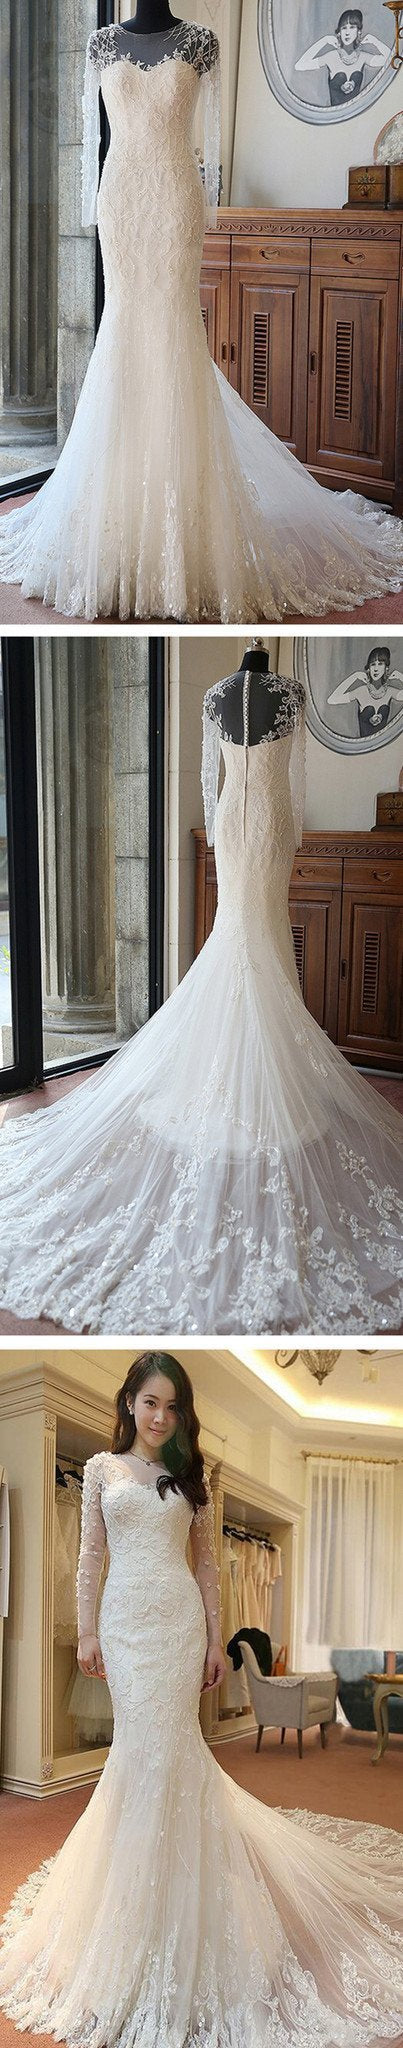 2018 High Quality Custom Sexy Mermaid White Lace Long Sleeves Wedding Party Dress , WD0011